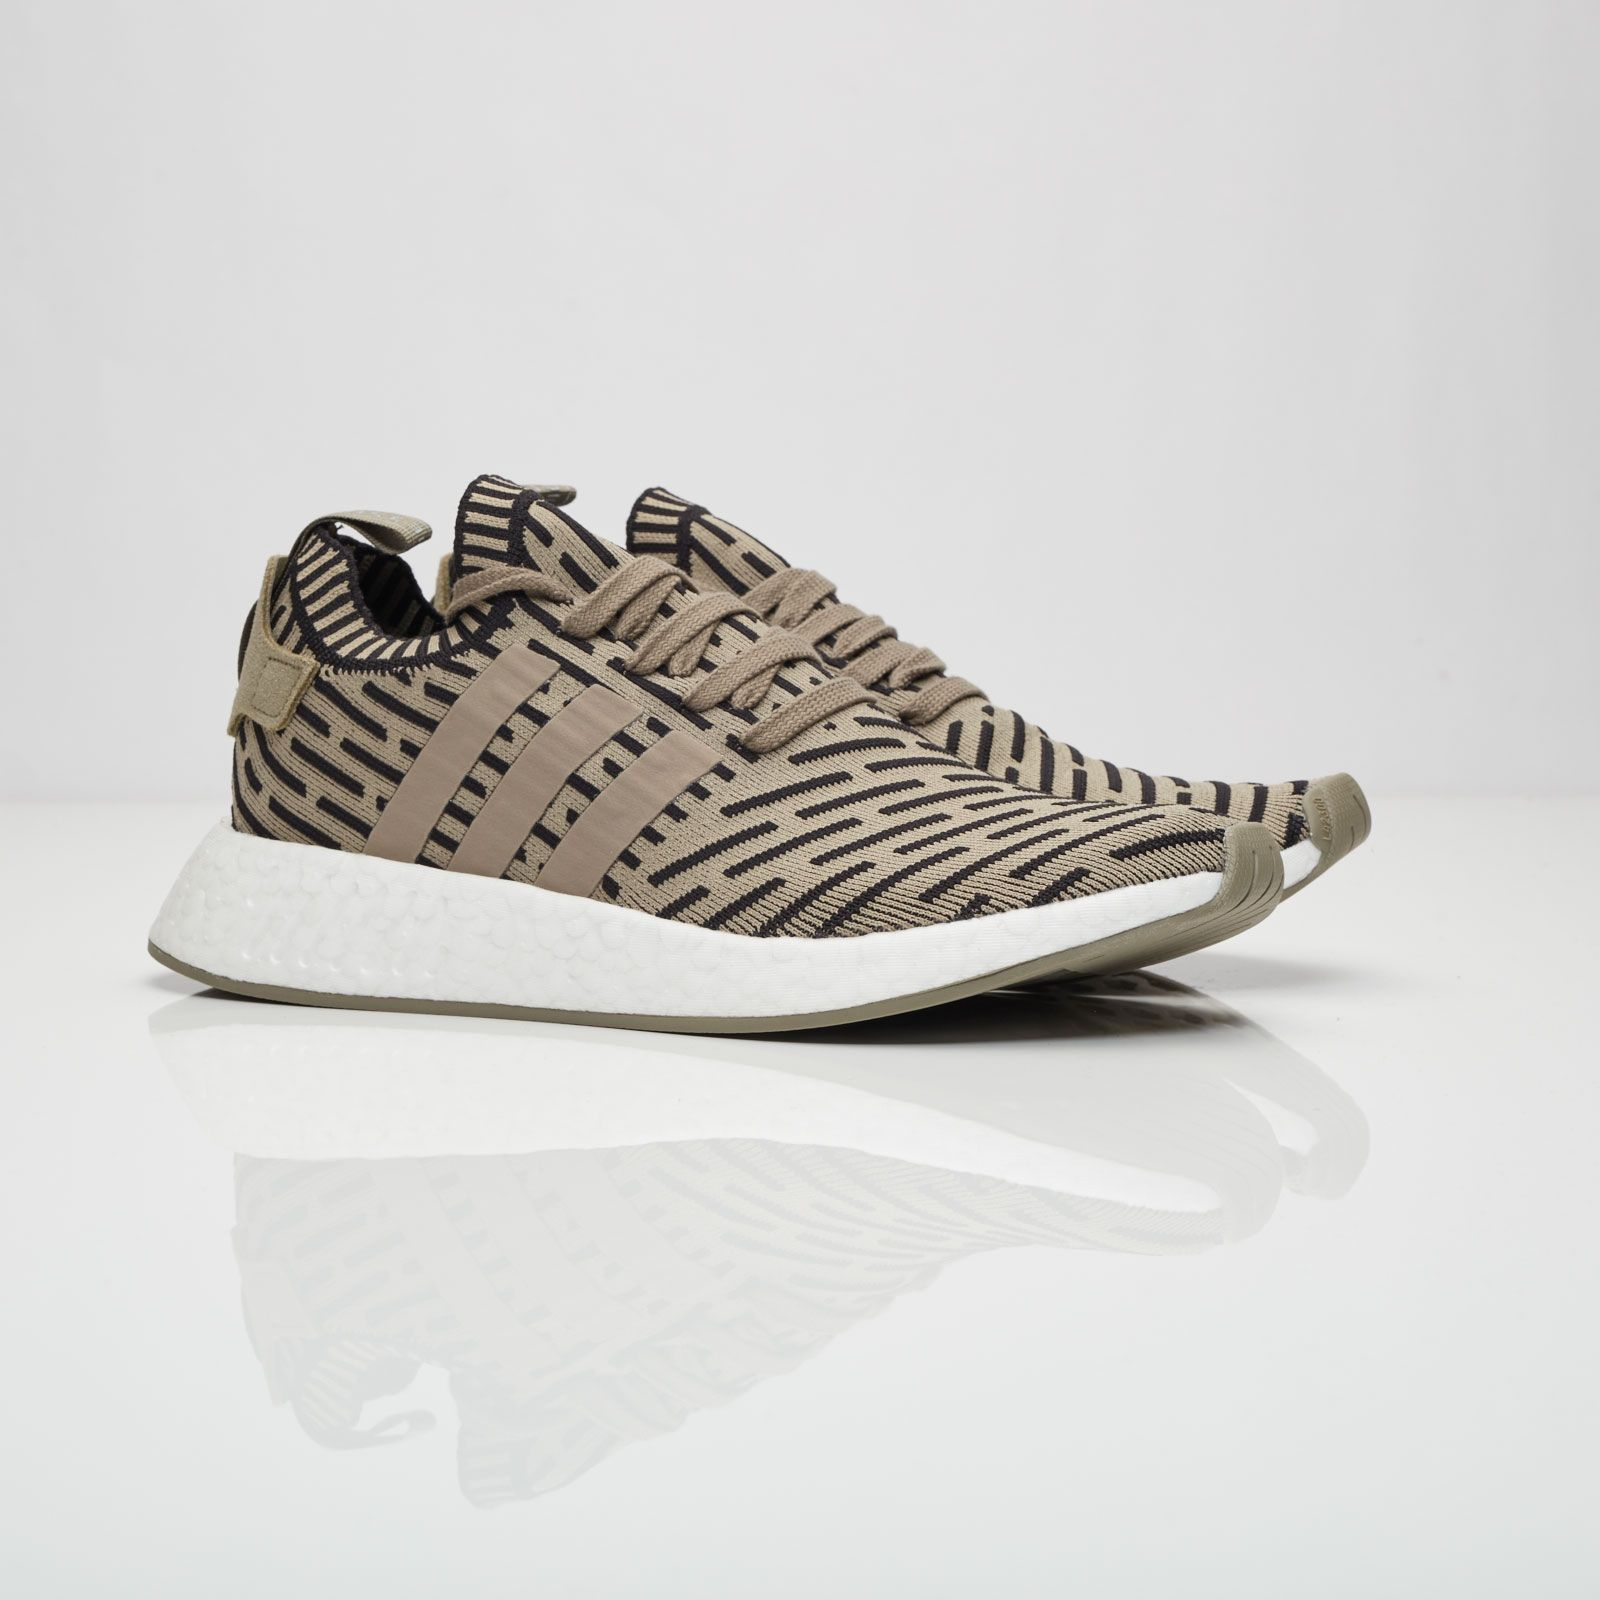 women's adidas originals nmd ivy /ivy techsoup office 2016 keygen